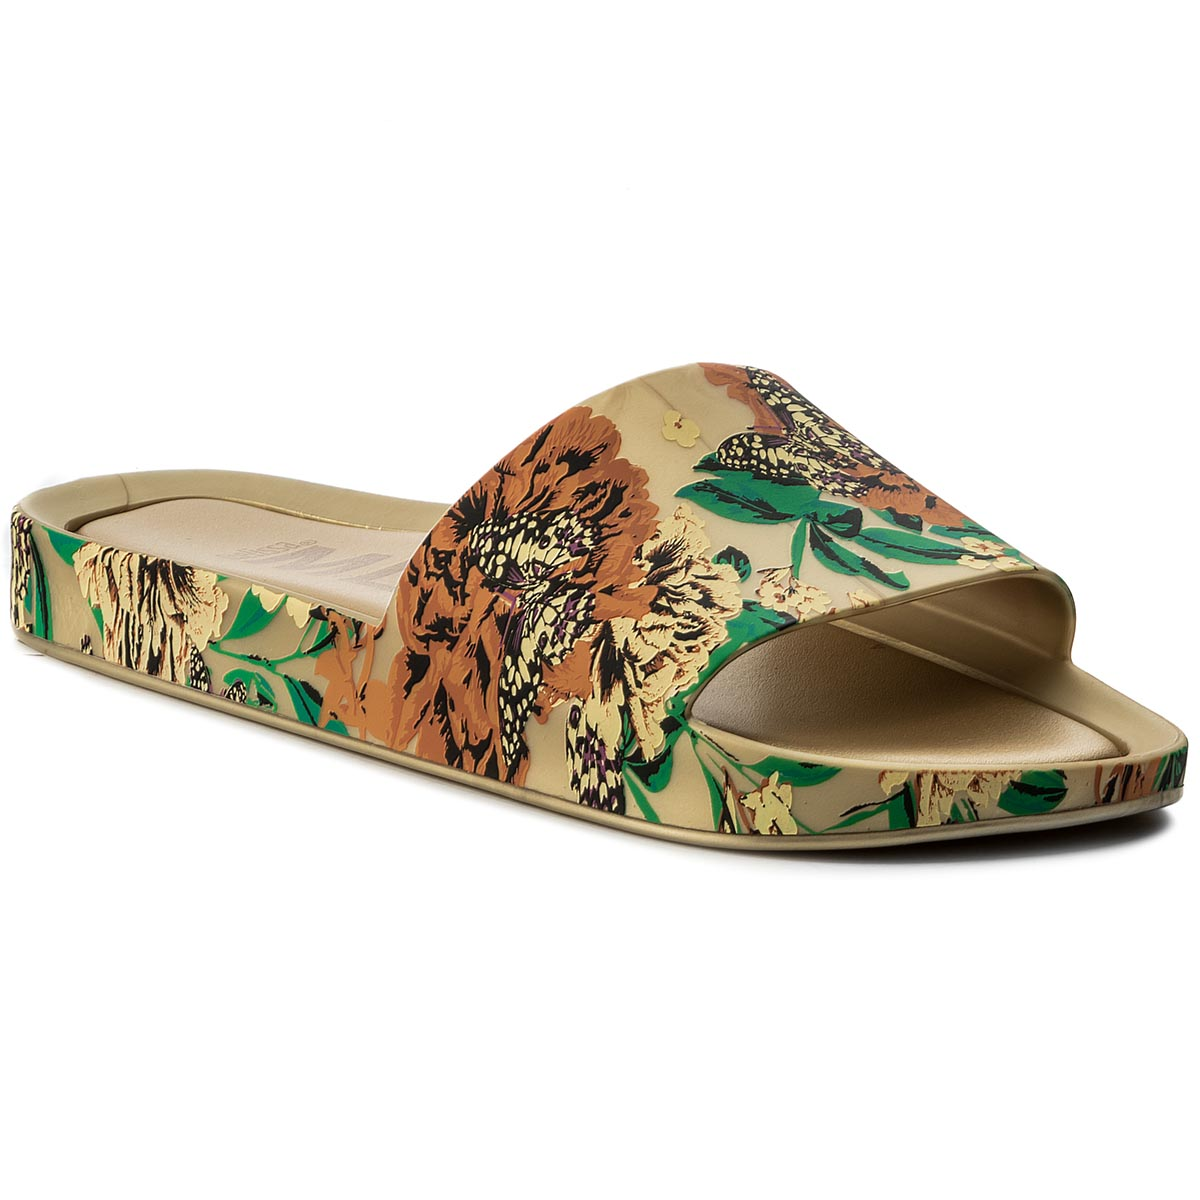 Klapki MELISSA - Beach Slide III Ad 32276 Gold/Green 52236